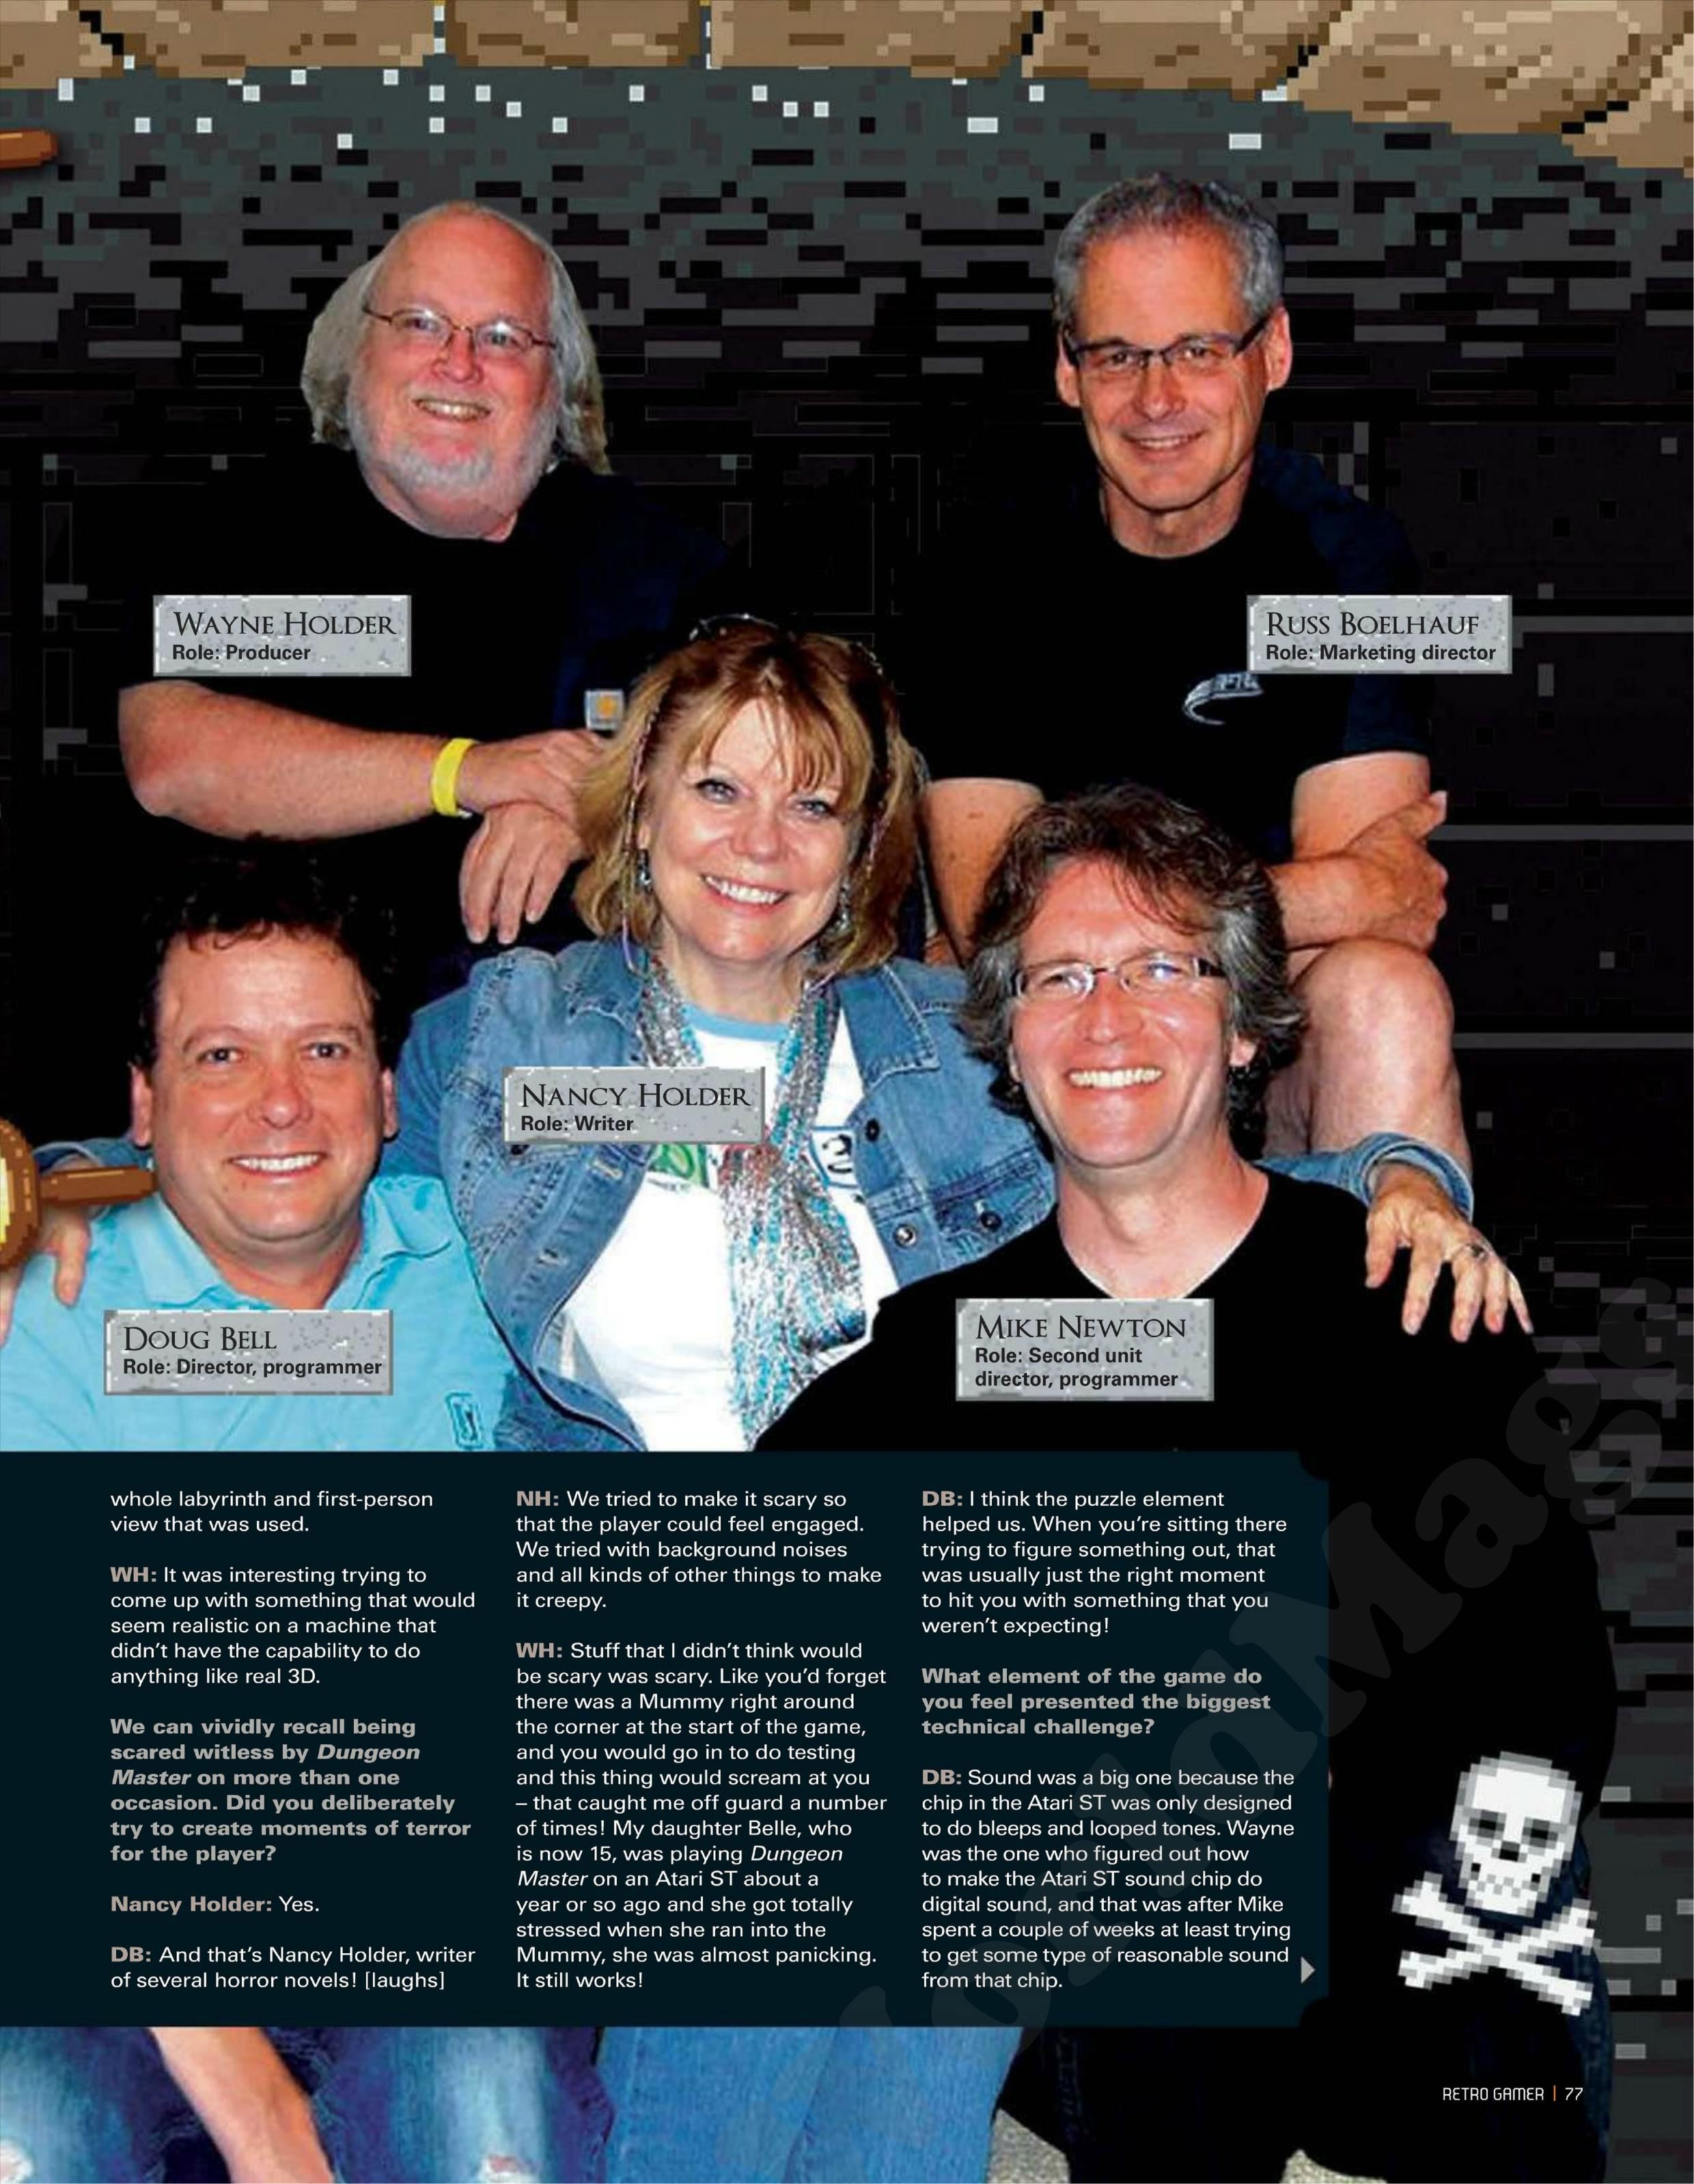 Dungeon Master Game Series Article published in British magazine 'Retro Gamer', Issue #105 July 2012, Page 77